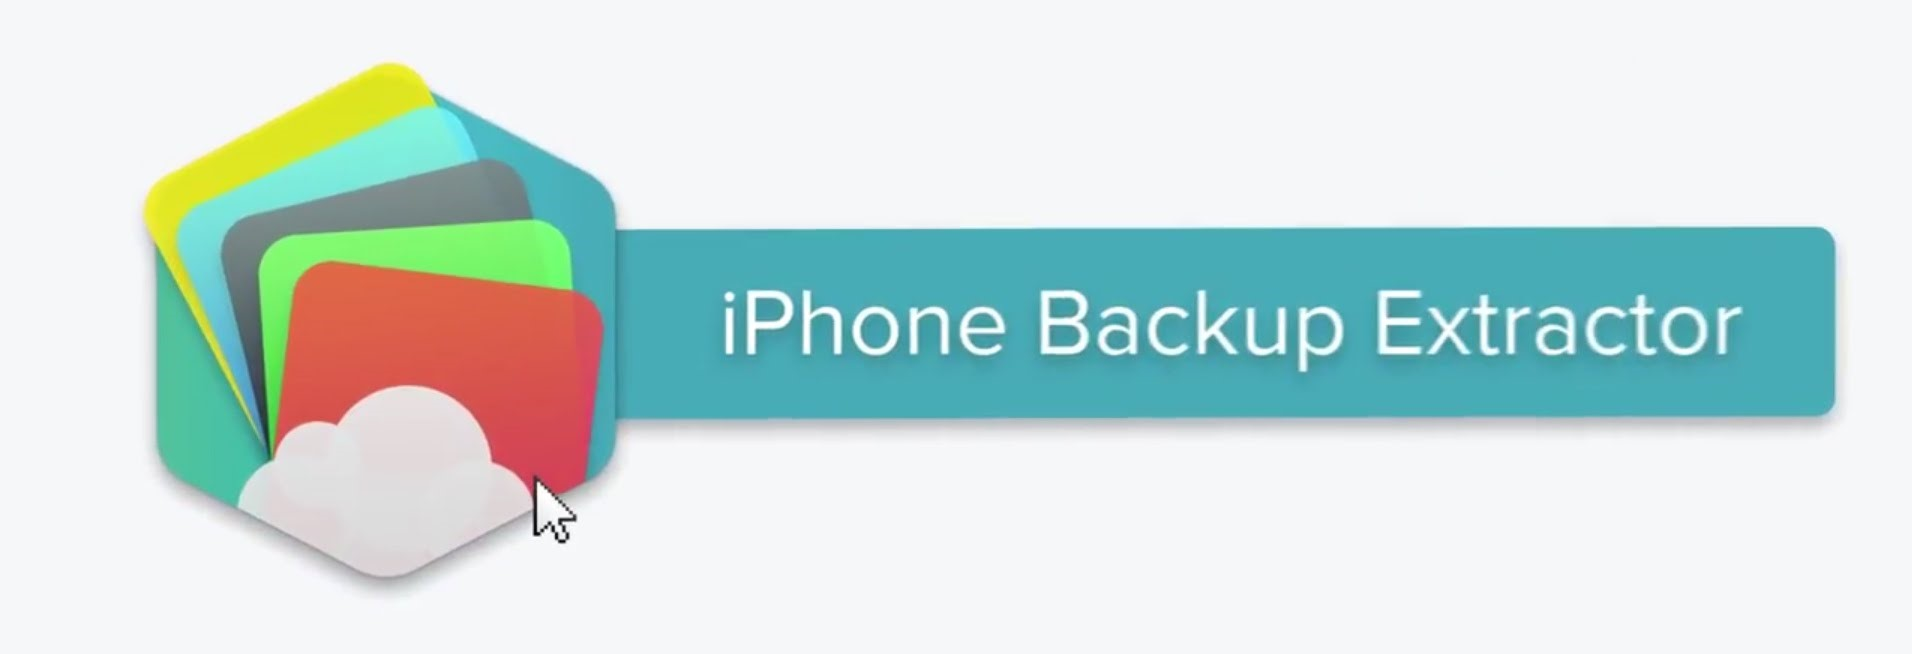 iPhone Backup Extractor 7.6.2.1103 Crack Full Keygen Torrent